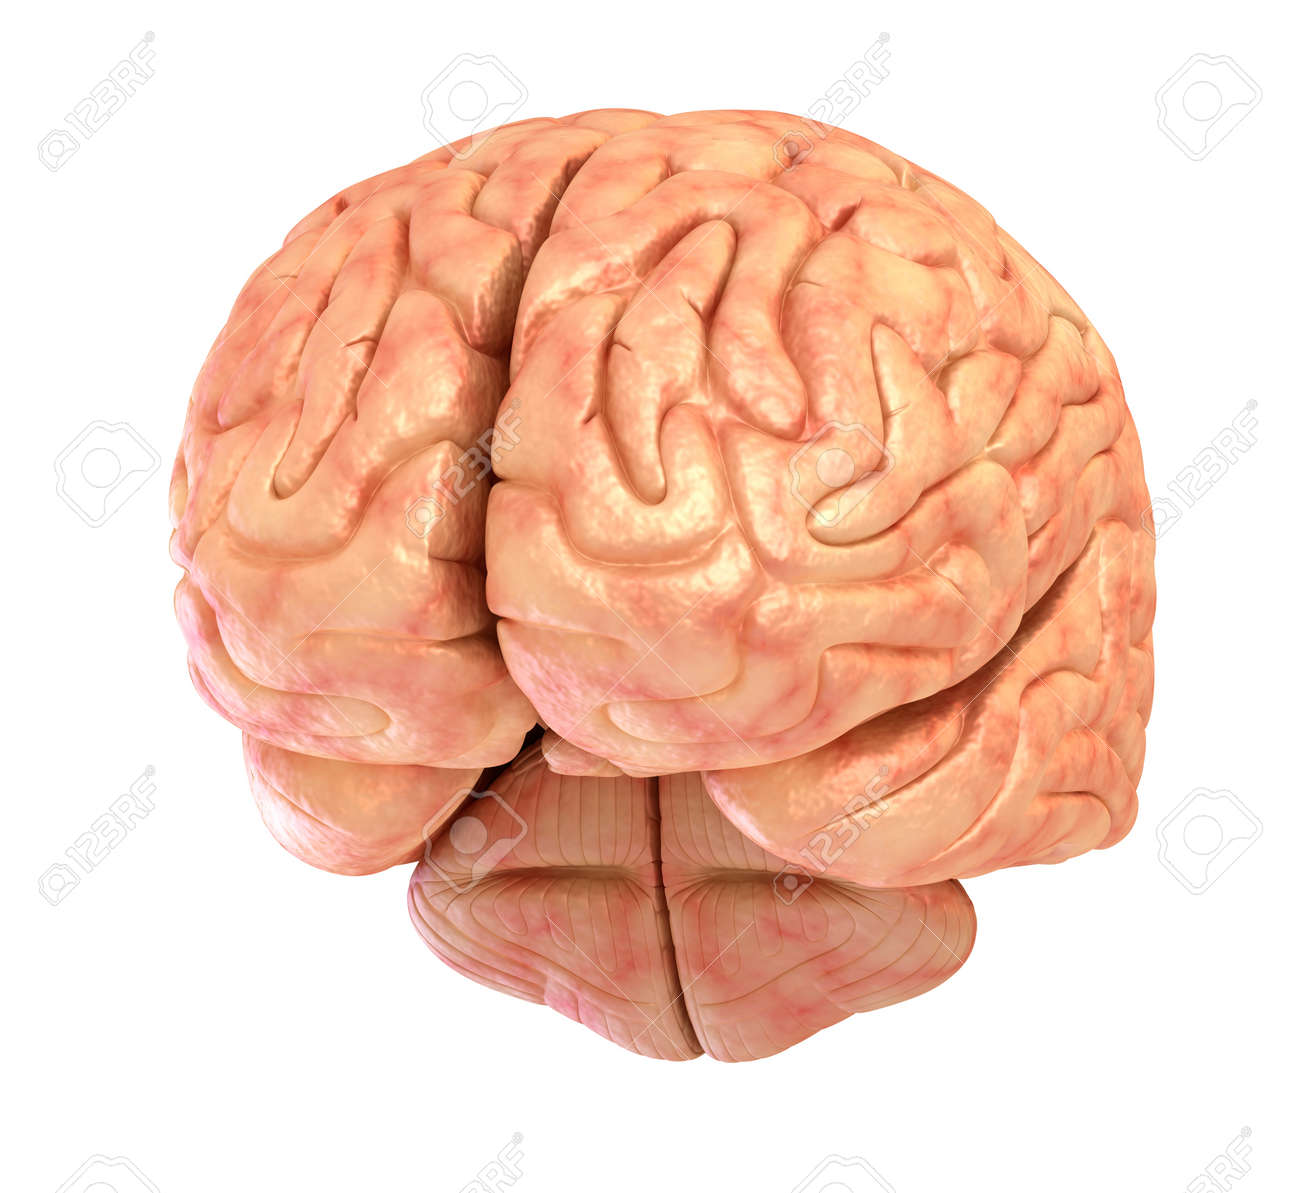 Human Brain 3D Model, Isolated On White Stock Photo, Picture And ...